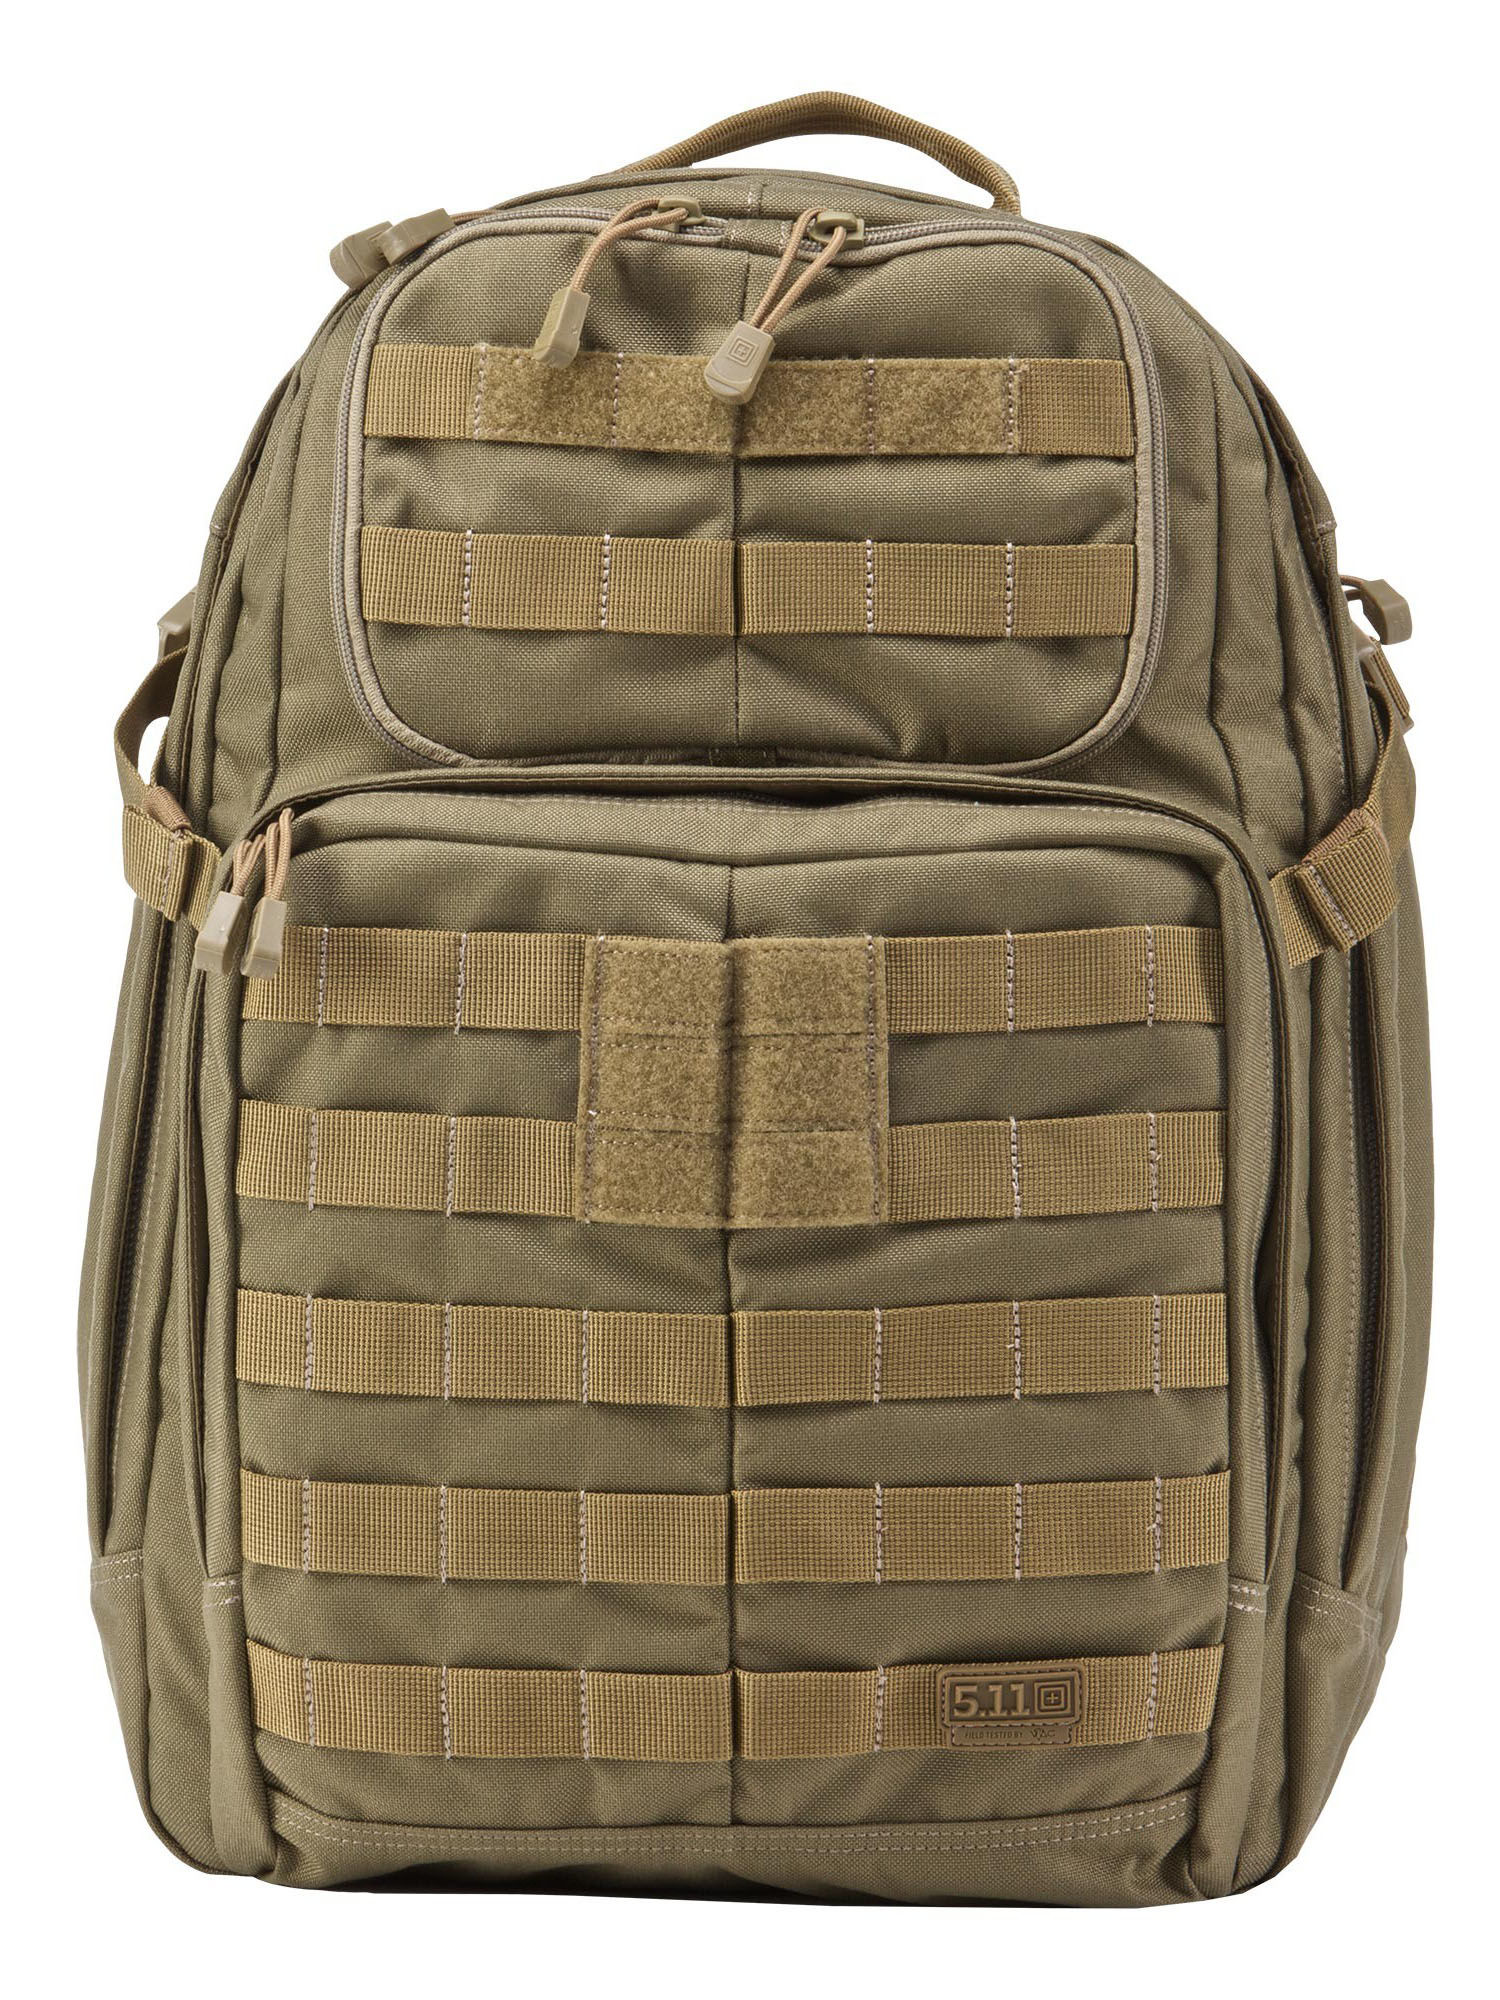 5.11 Tactical Rush 24 Backpack (M) Sandstone